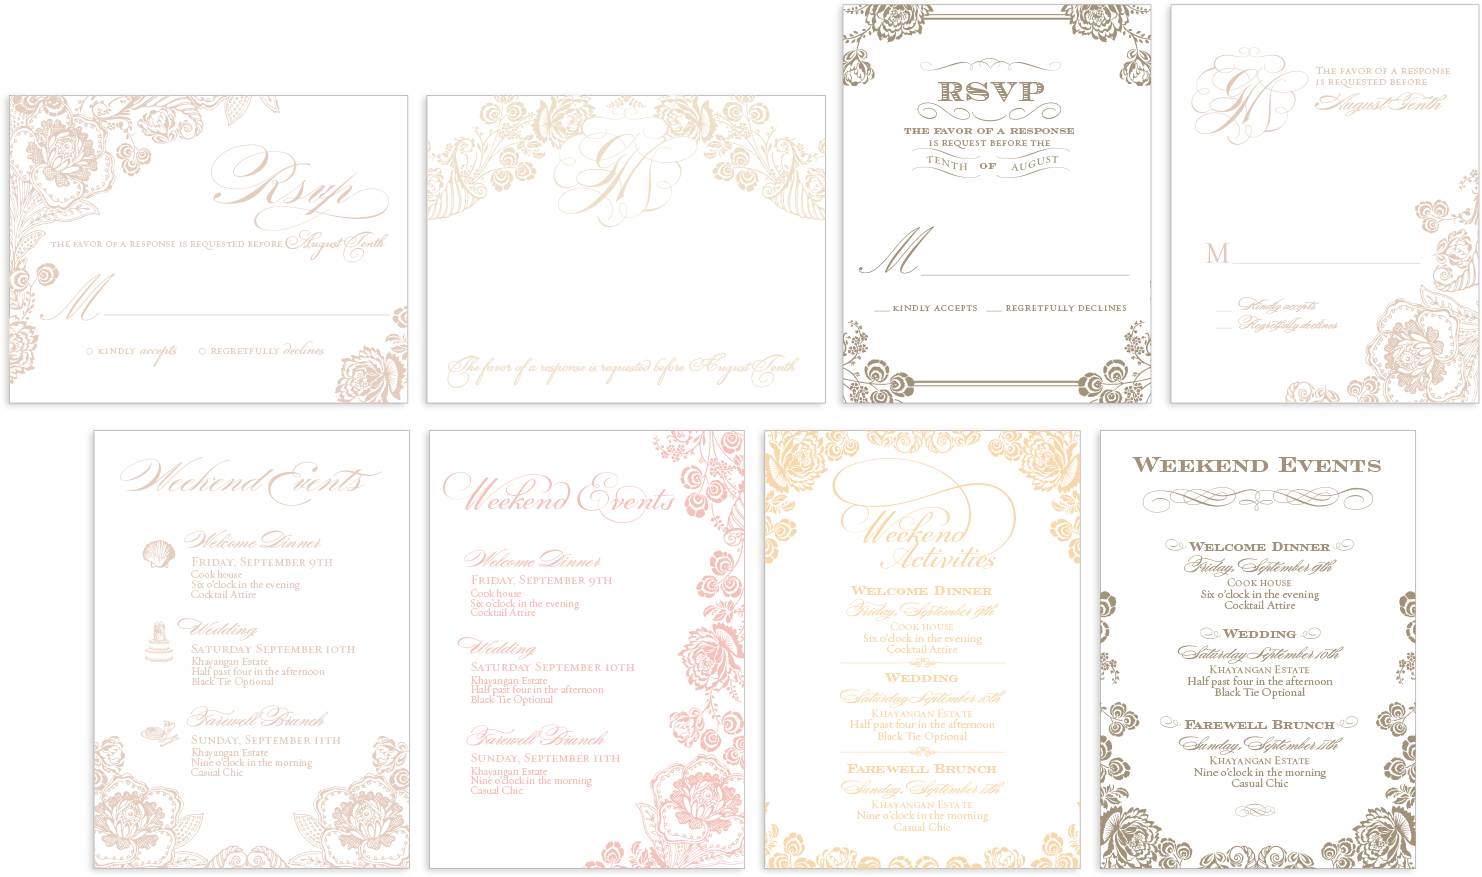 Floral wedding reply card sketches